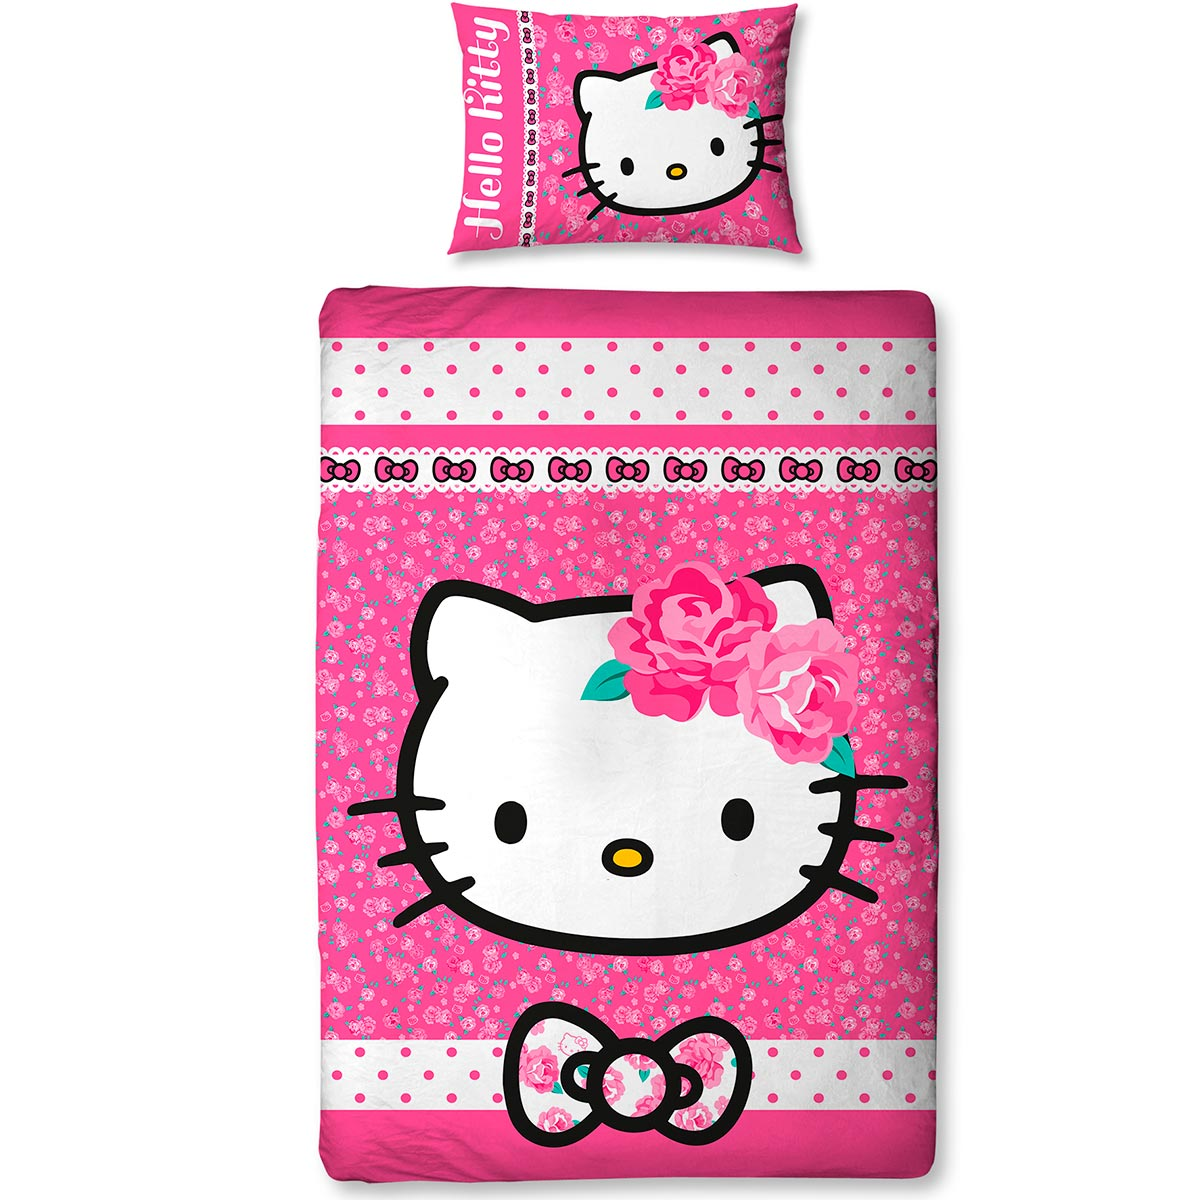 Neuf parure de lit reversible hello kitty sommerwind for Housse couette hello kitty